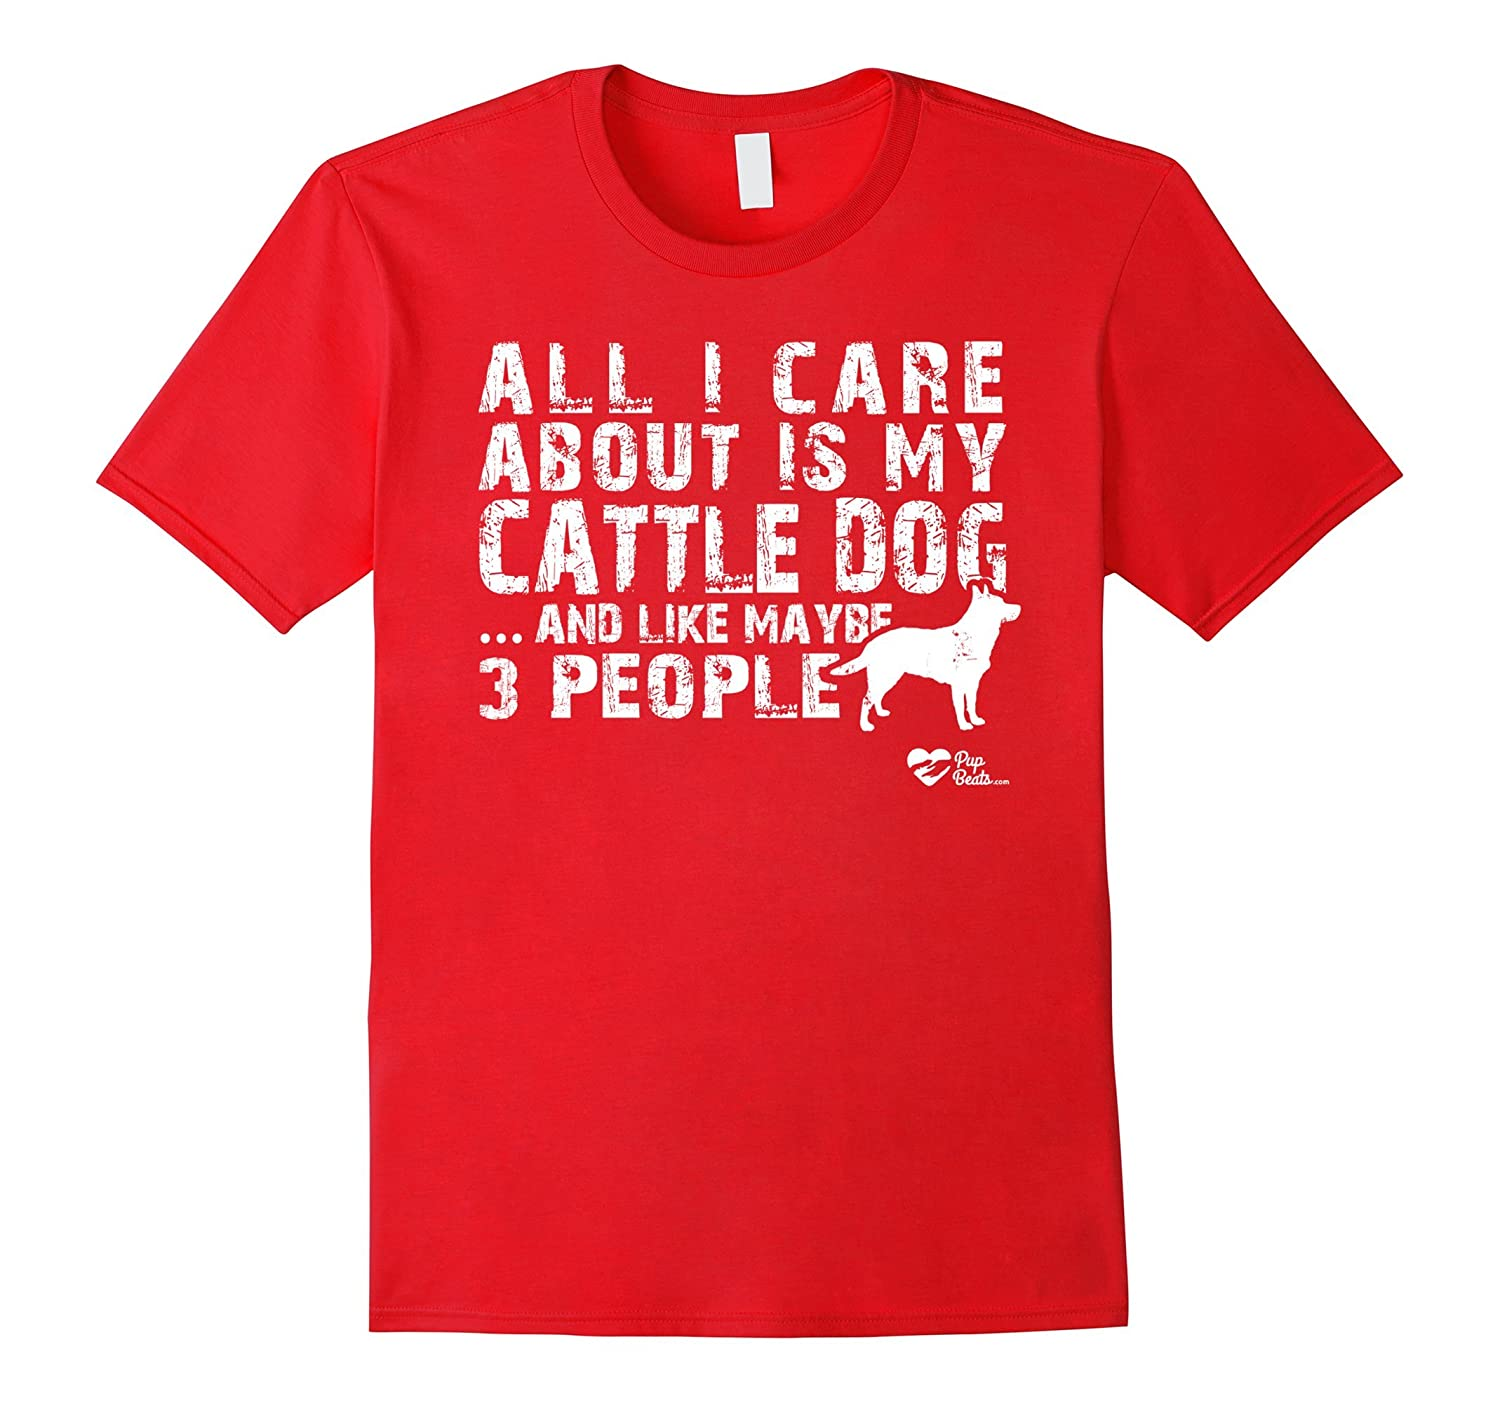 All I care about is my Cattle Dog T Shirts For Dog Lovers Goatstee